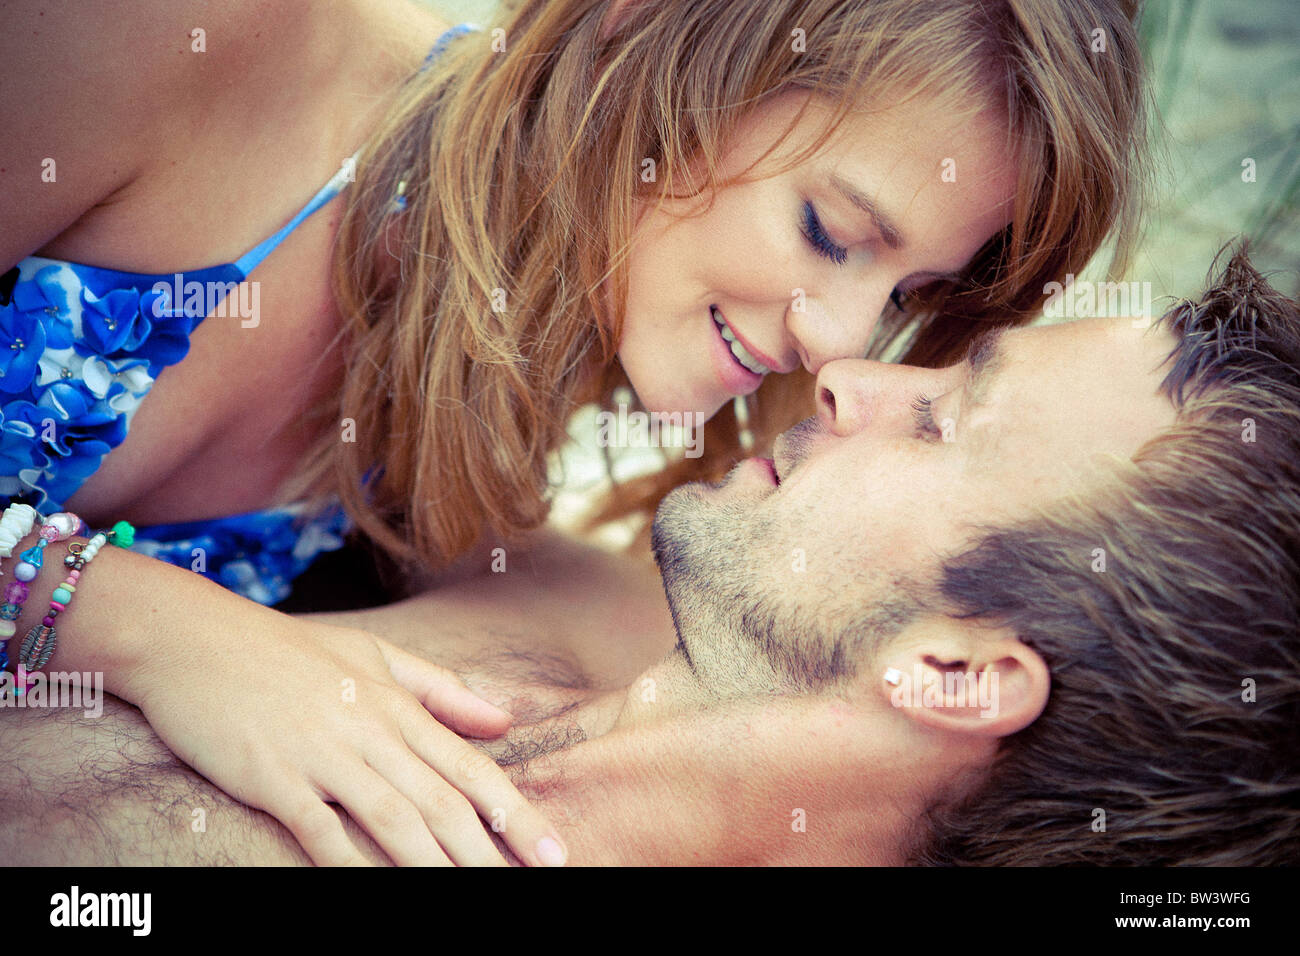 Young couple lie embracing - Stock Image